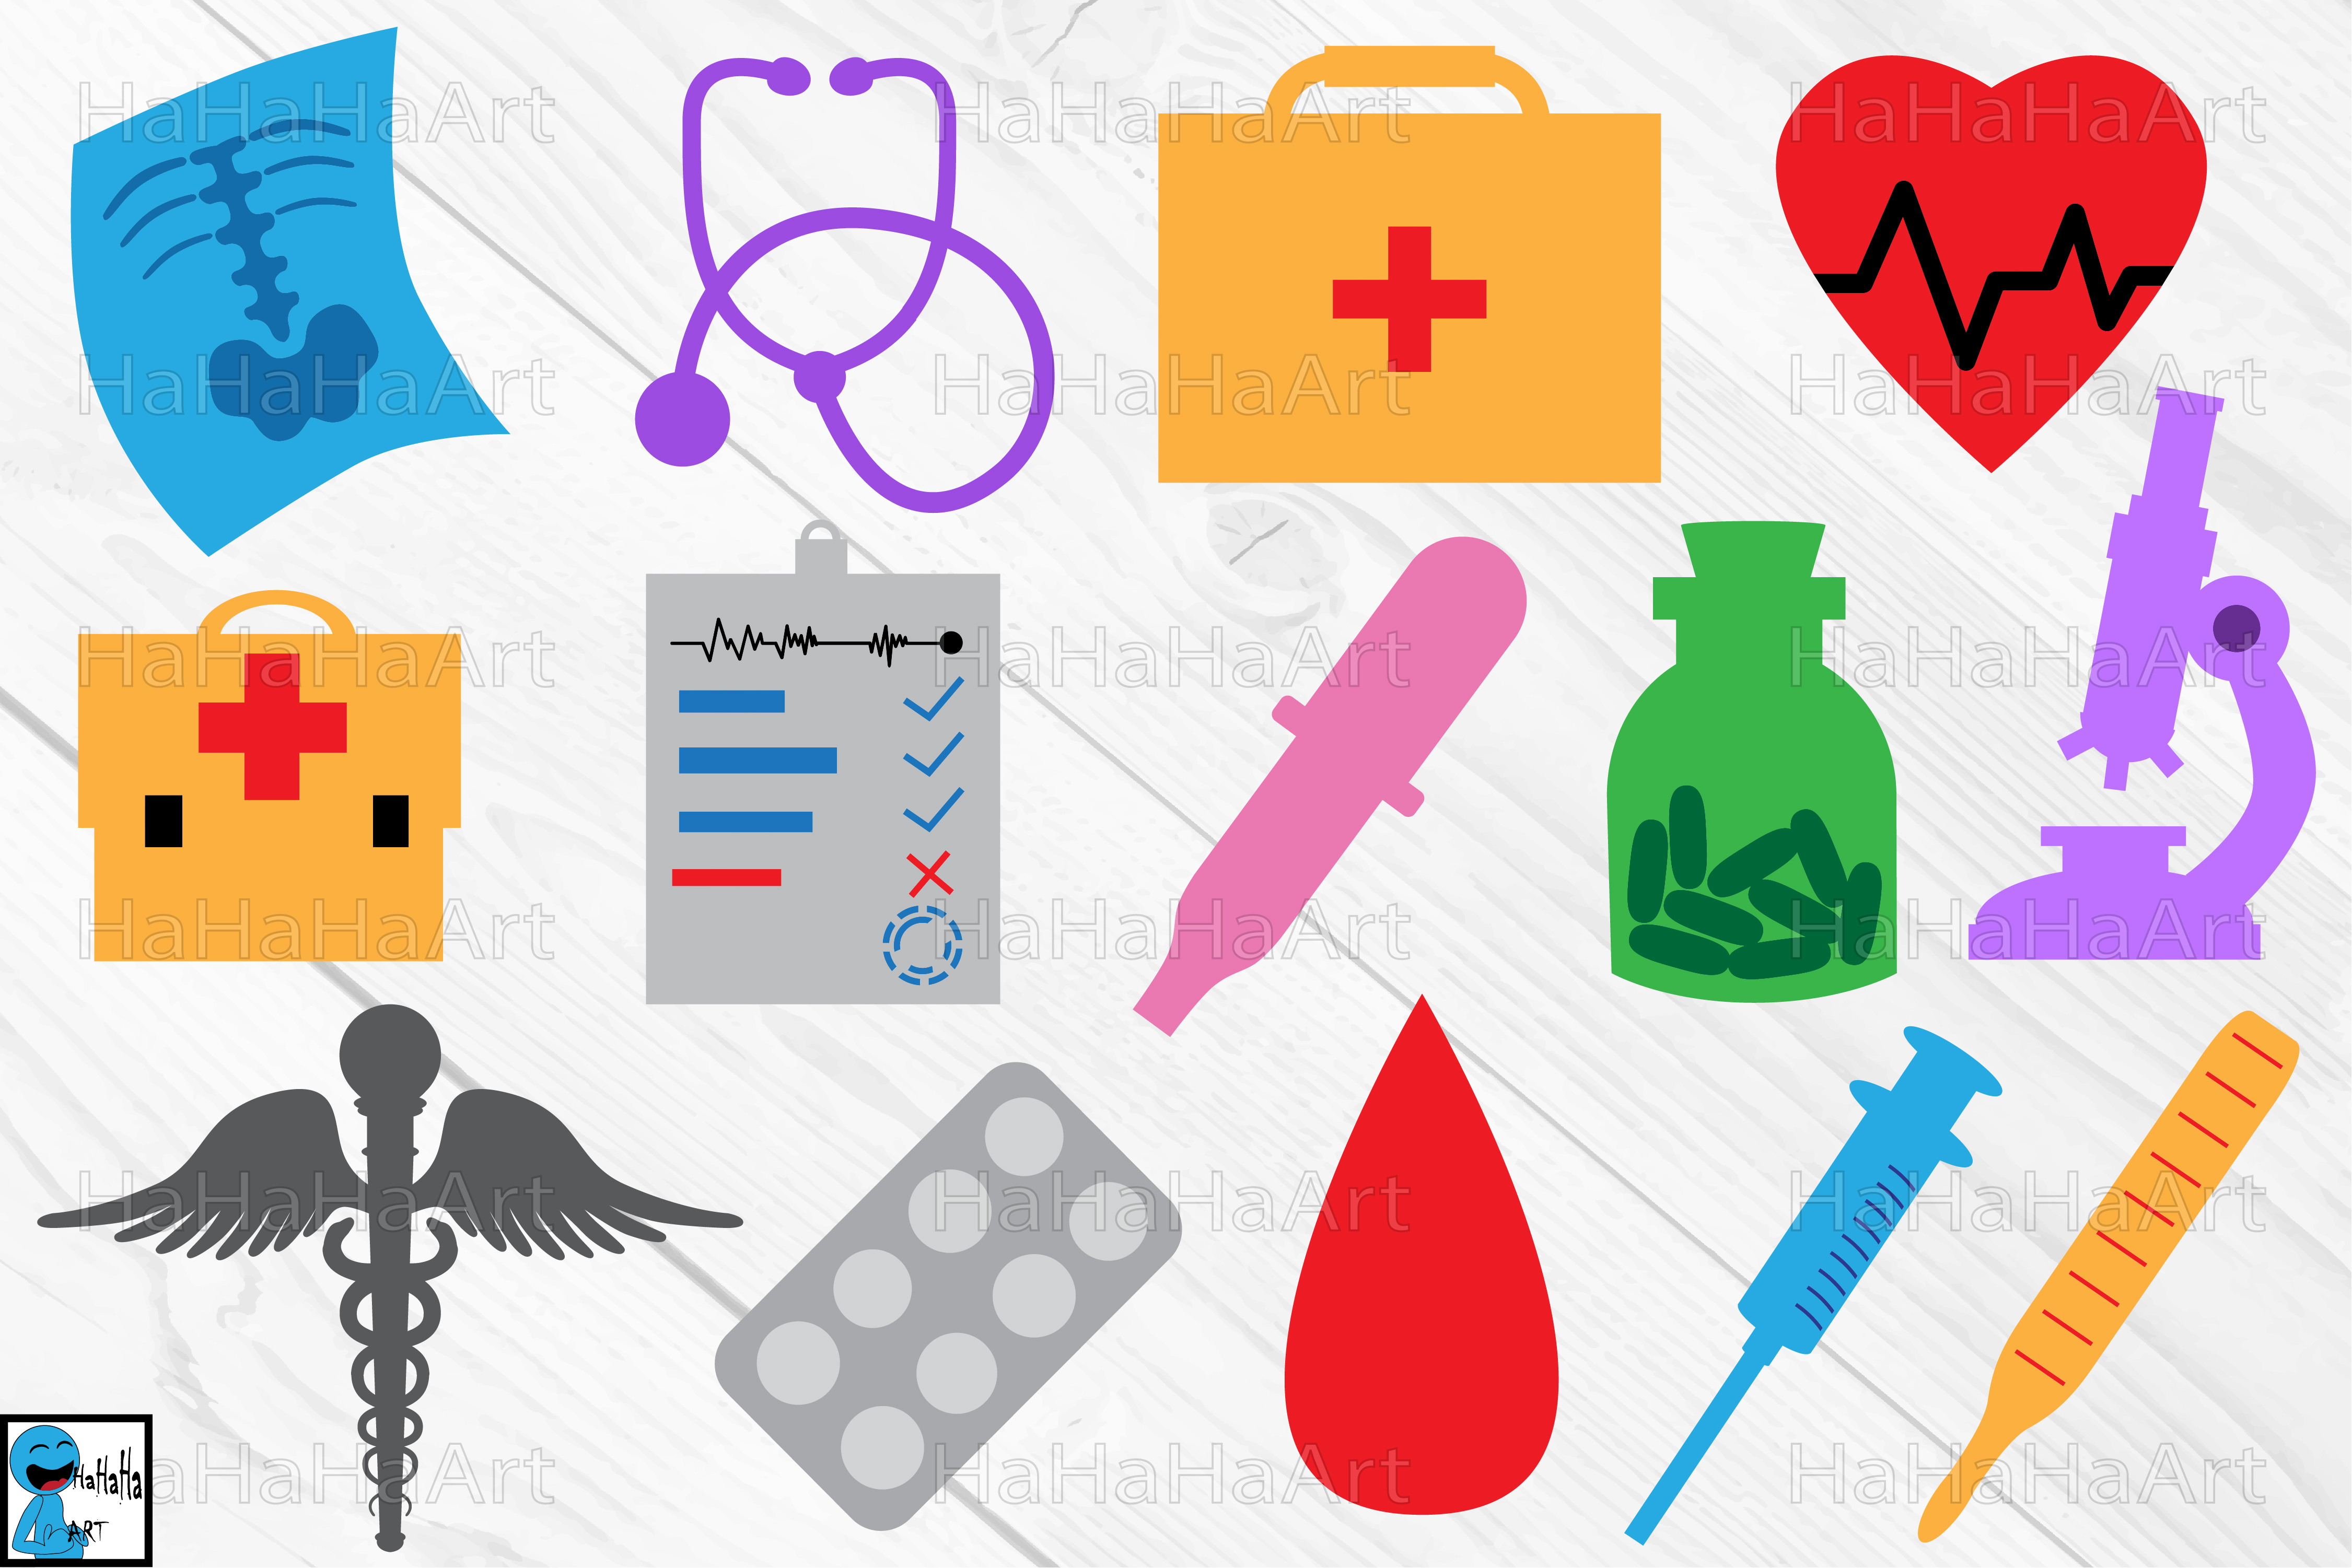 clipart transparent library Monogram doctor and cutting. Medical clipart.